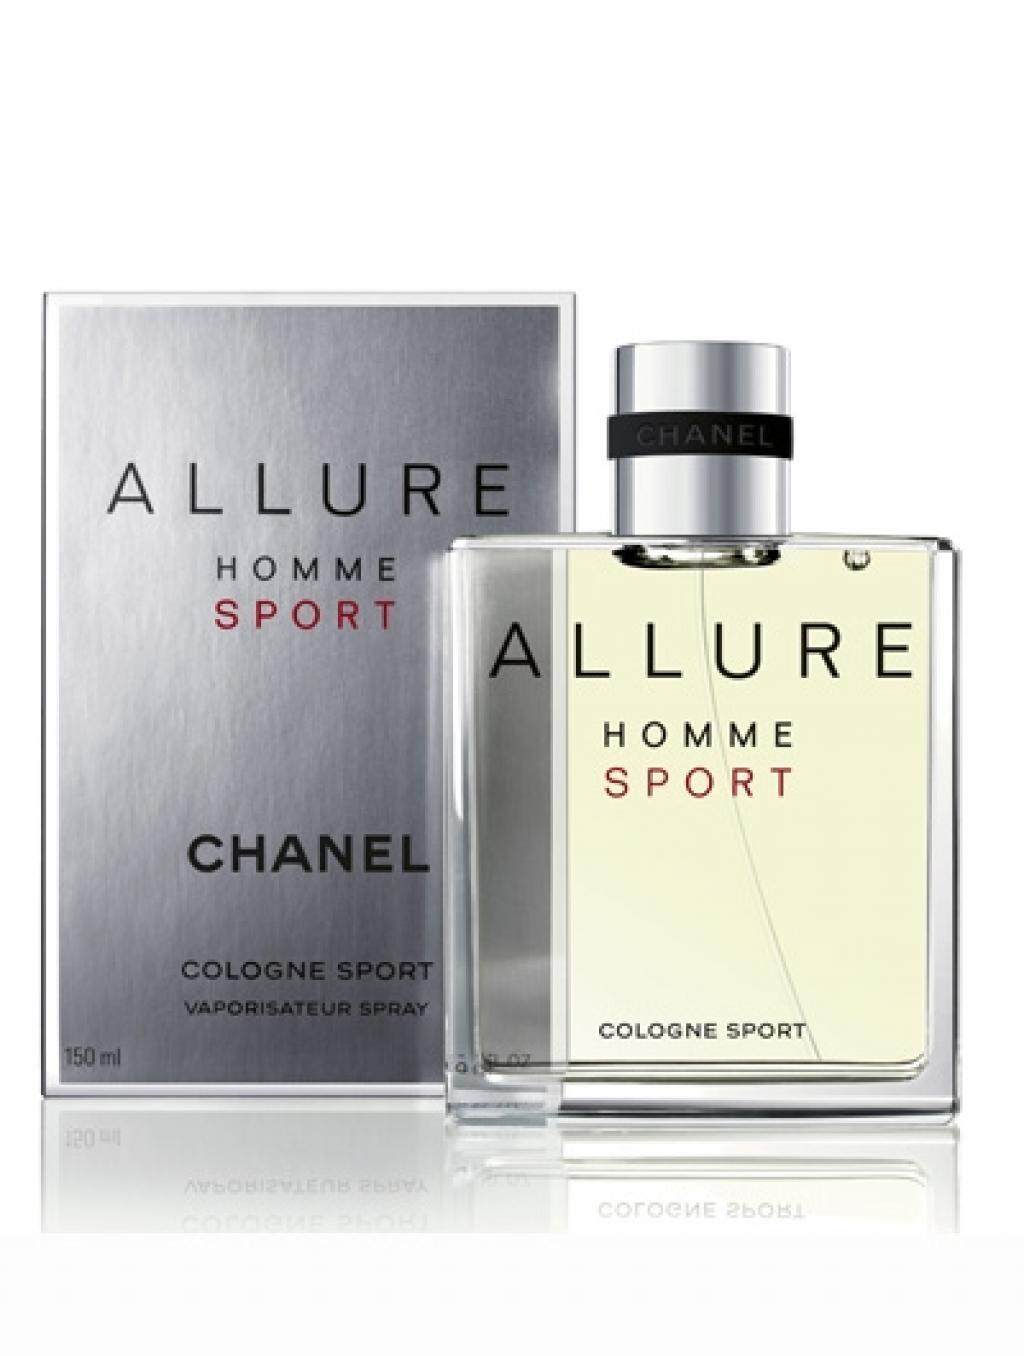 Zwitsal Classic Baby Cologne Fresh Floral 100 Ml Daftar Harga Day 100ml Allure Homme Sport Spray